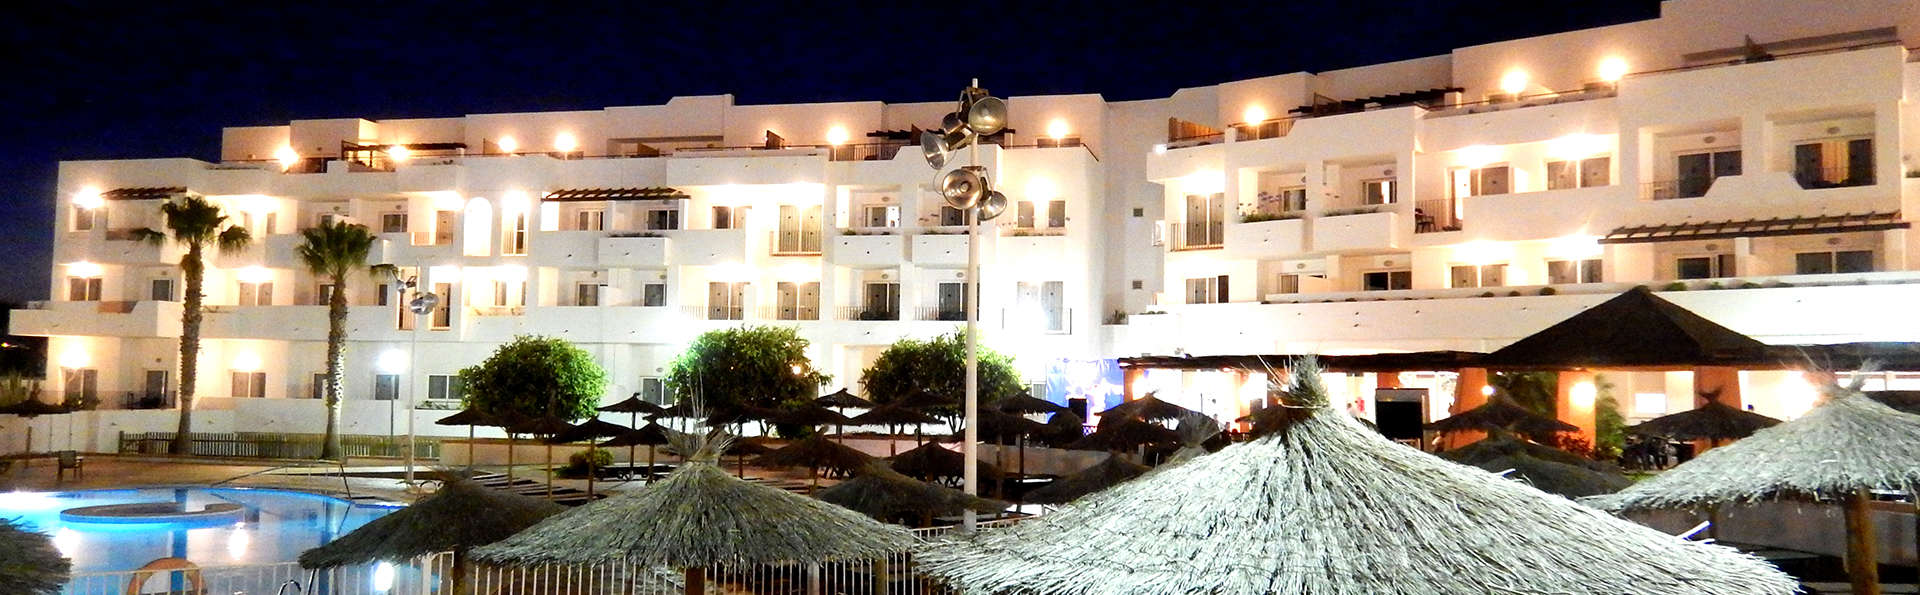 Ohtels Cabogata - Edit_Front.jpg